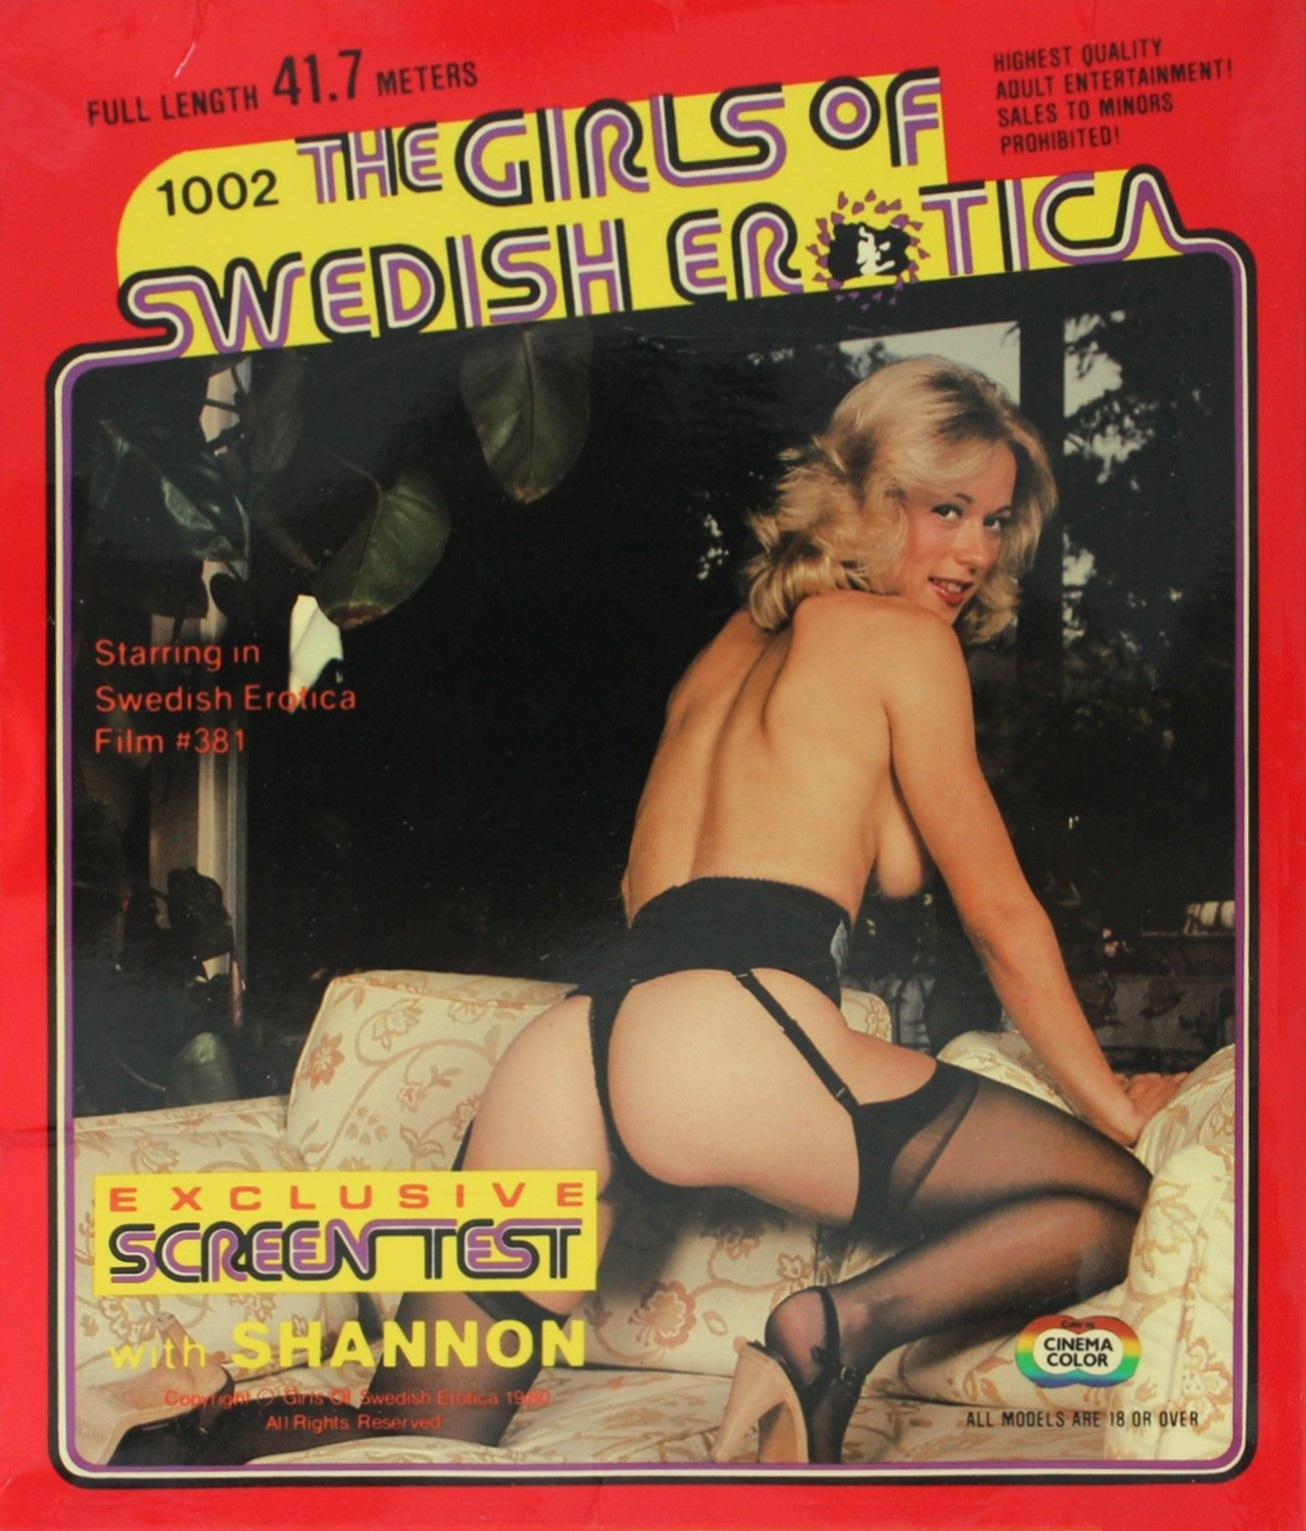 The Girls of Swedish Erotica 1002 - Part Two - Shannon